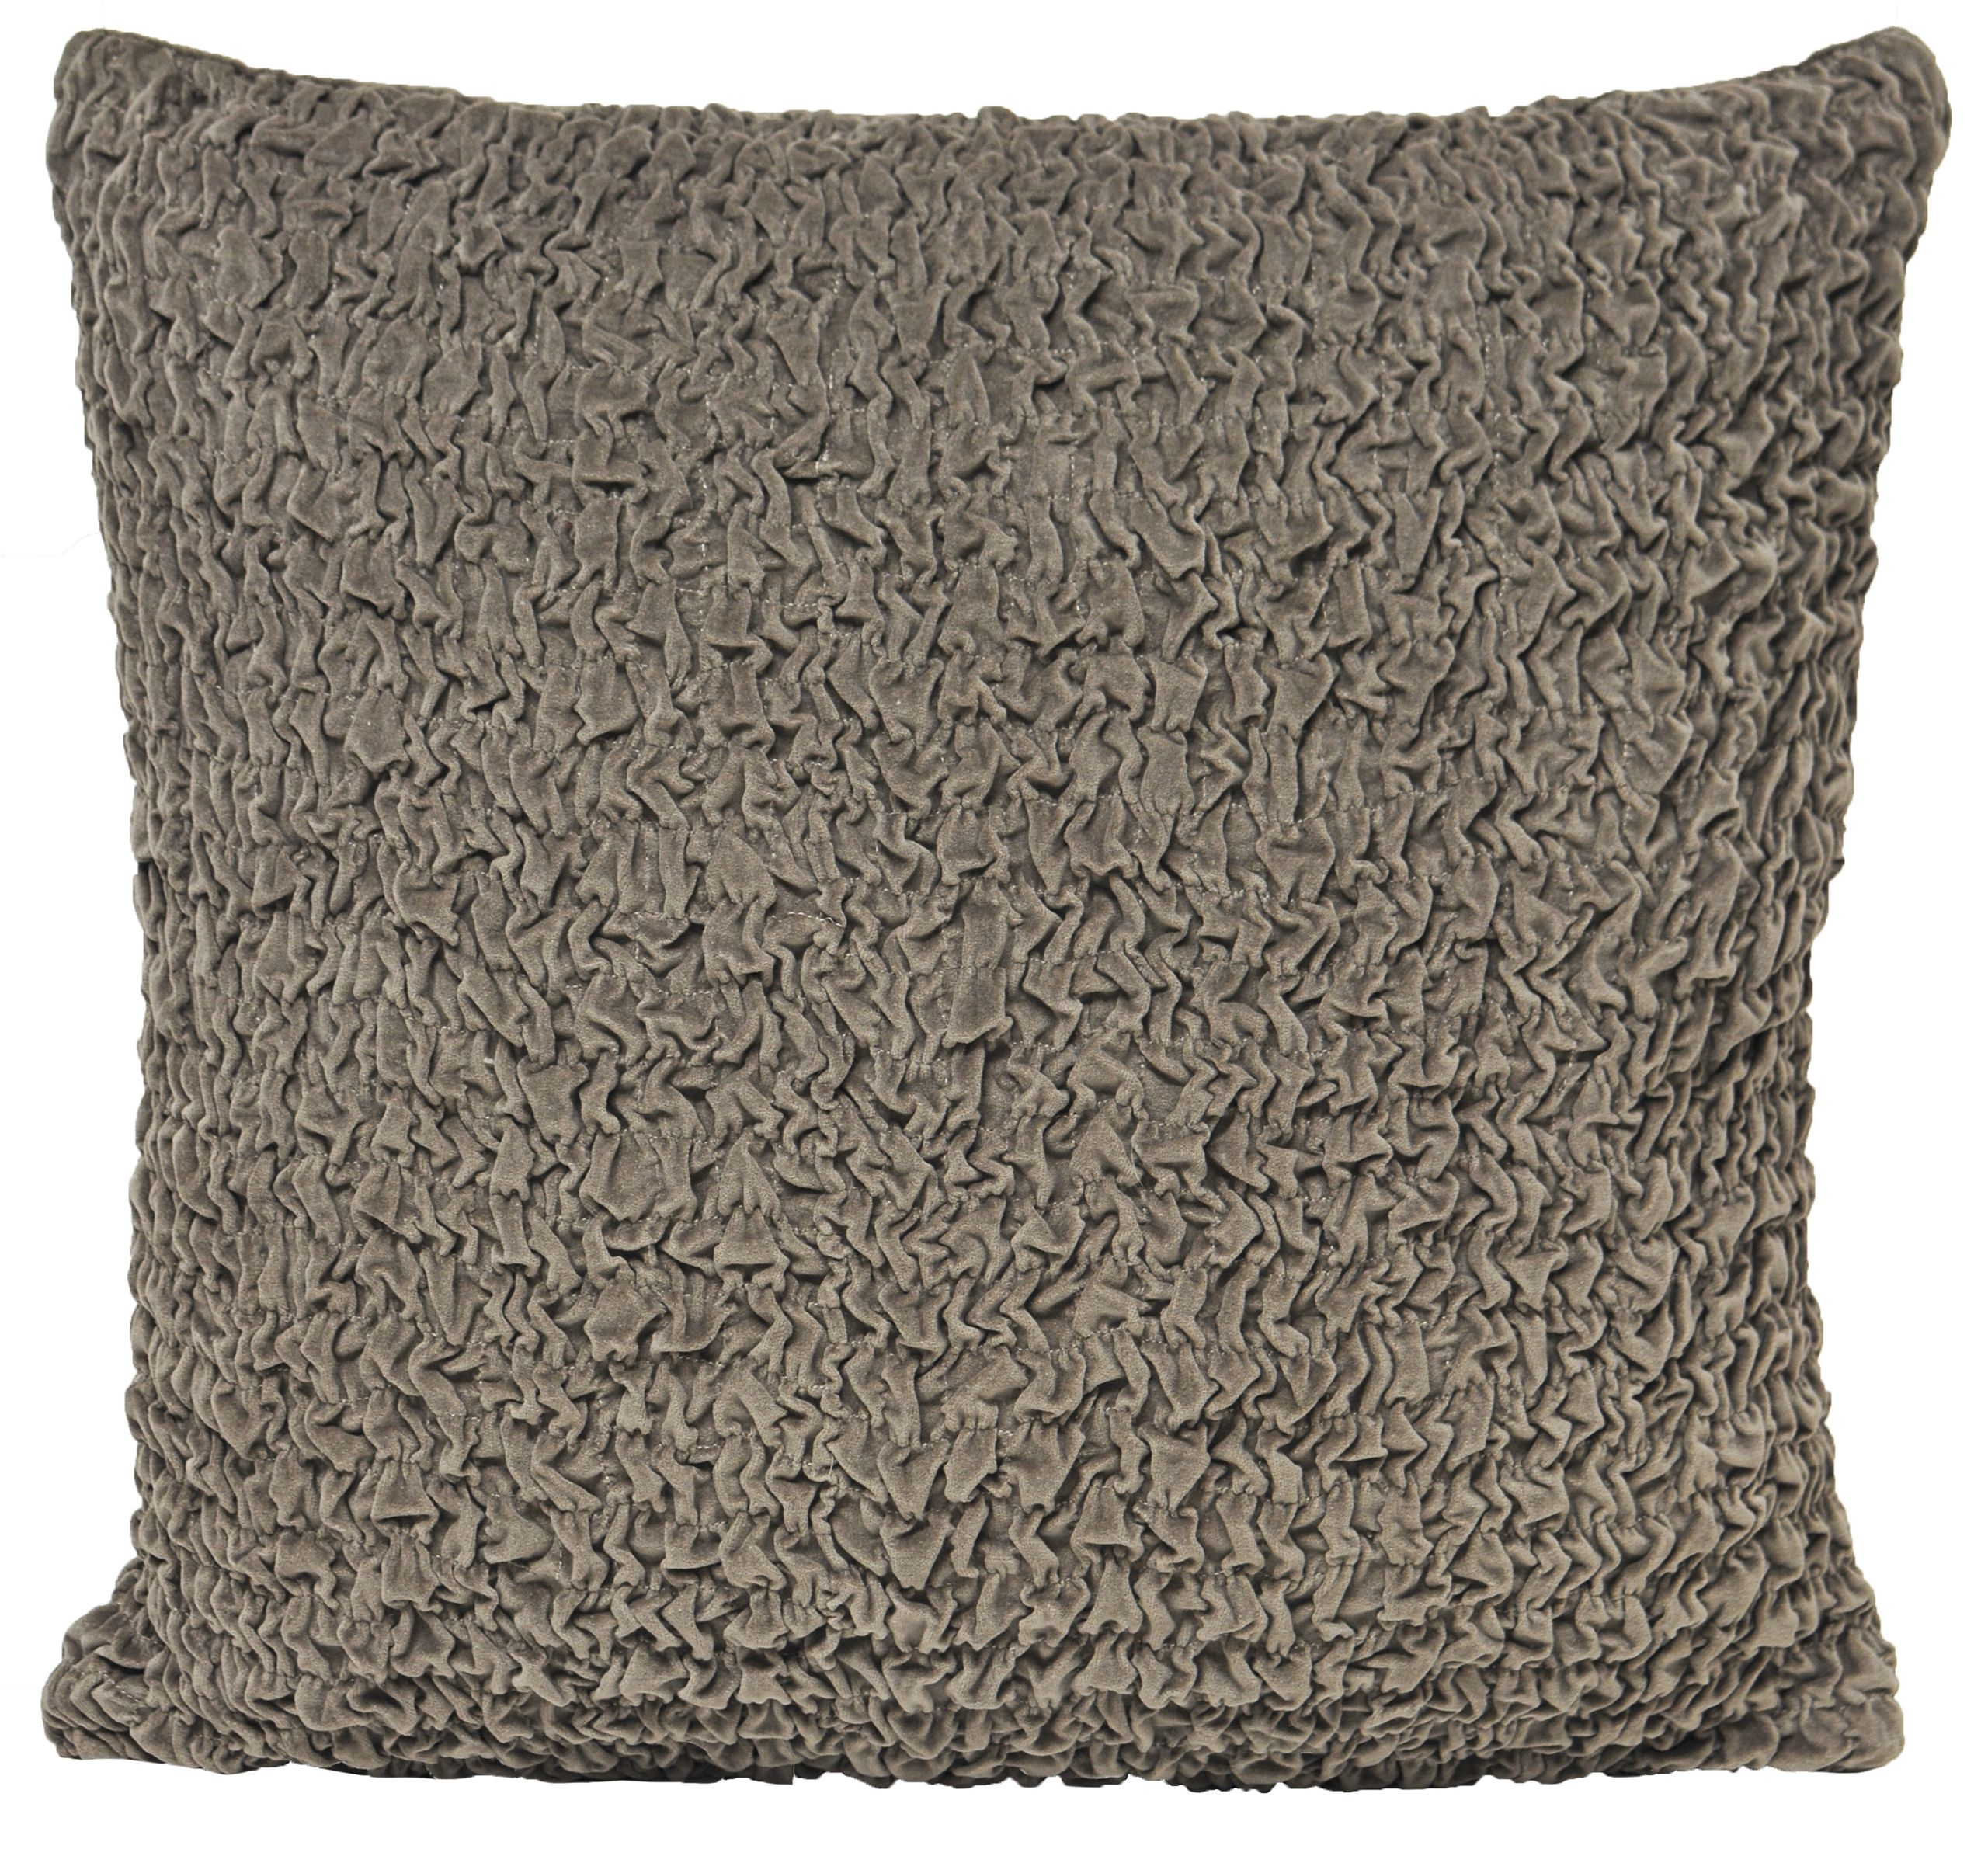 Rouched Polyester Filled Cushion